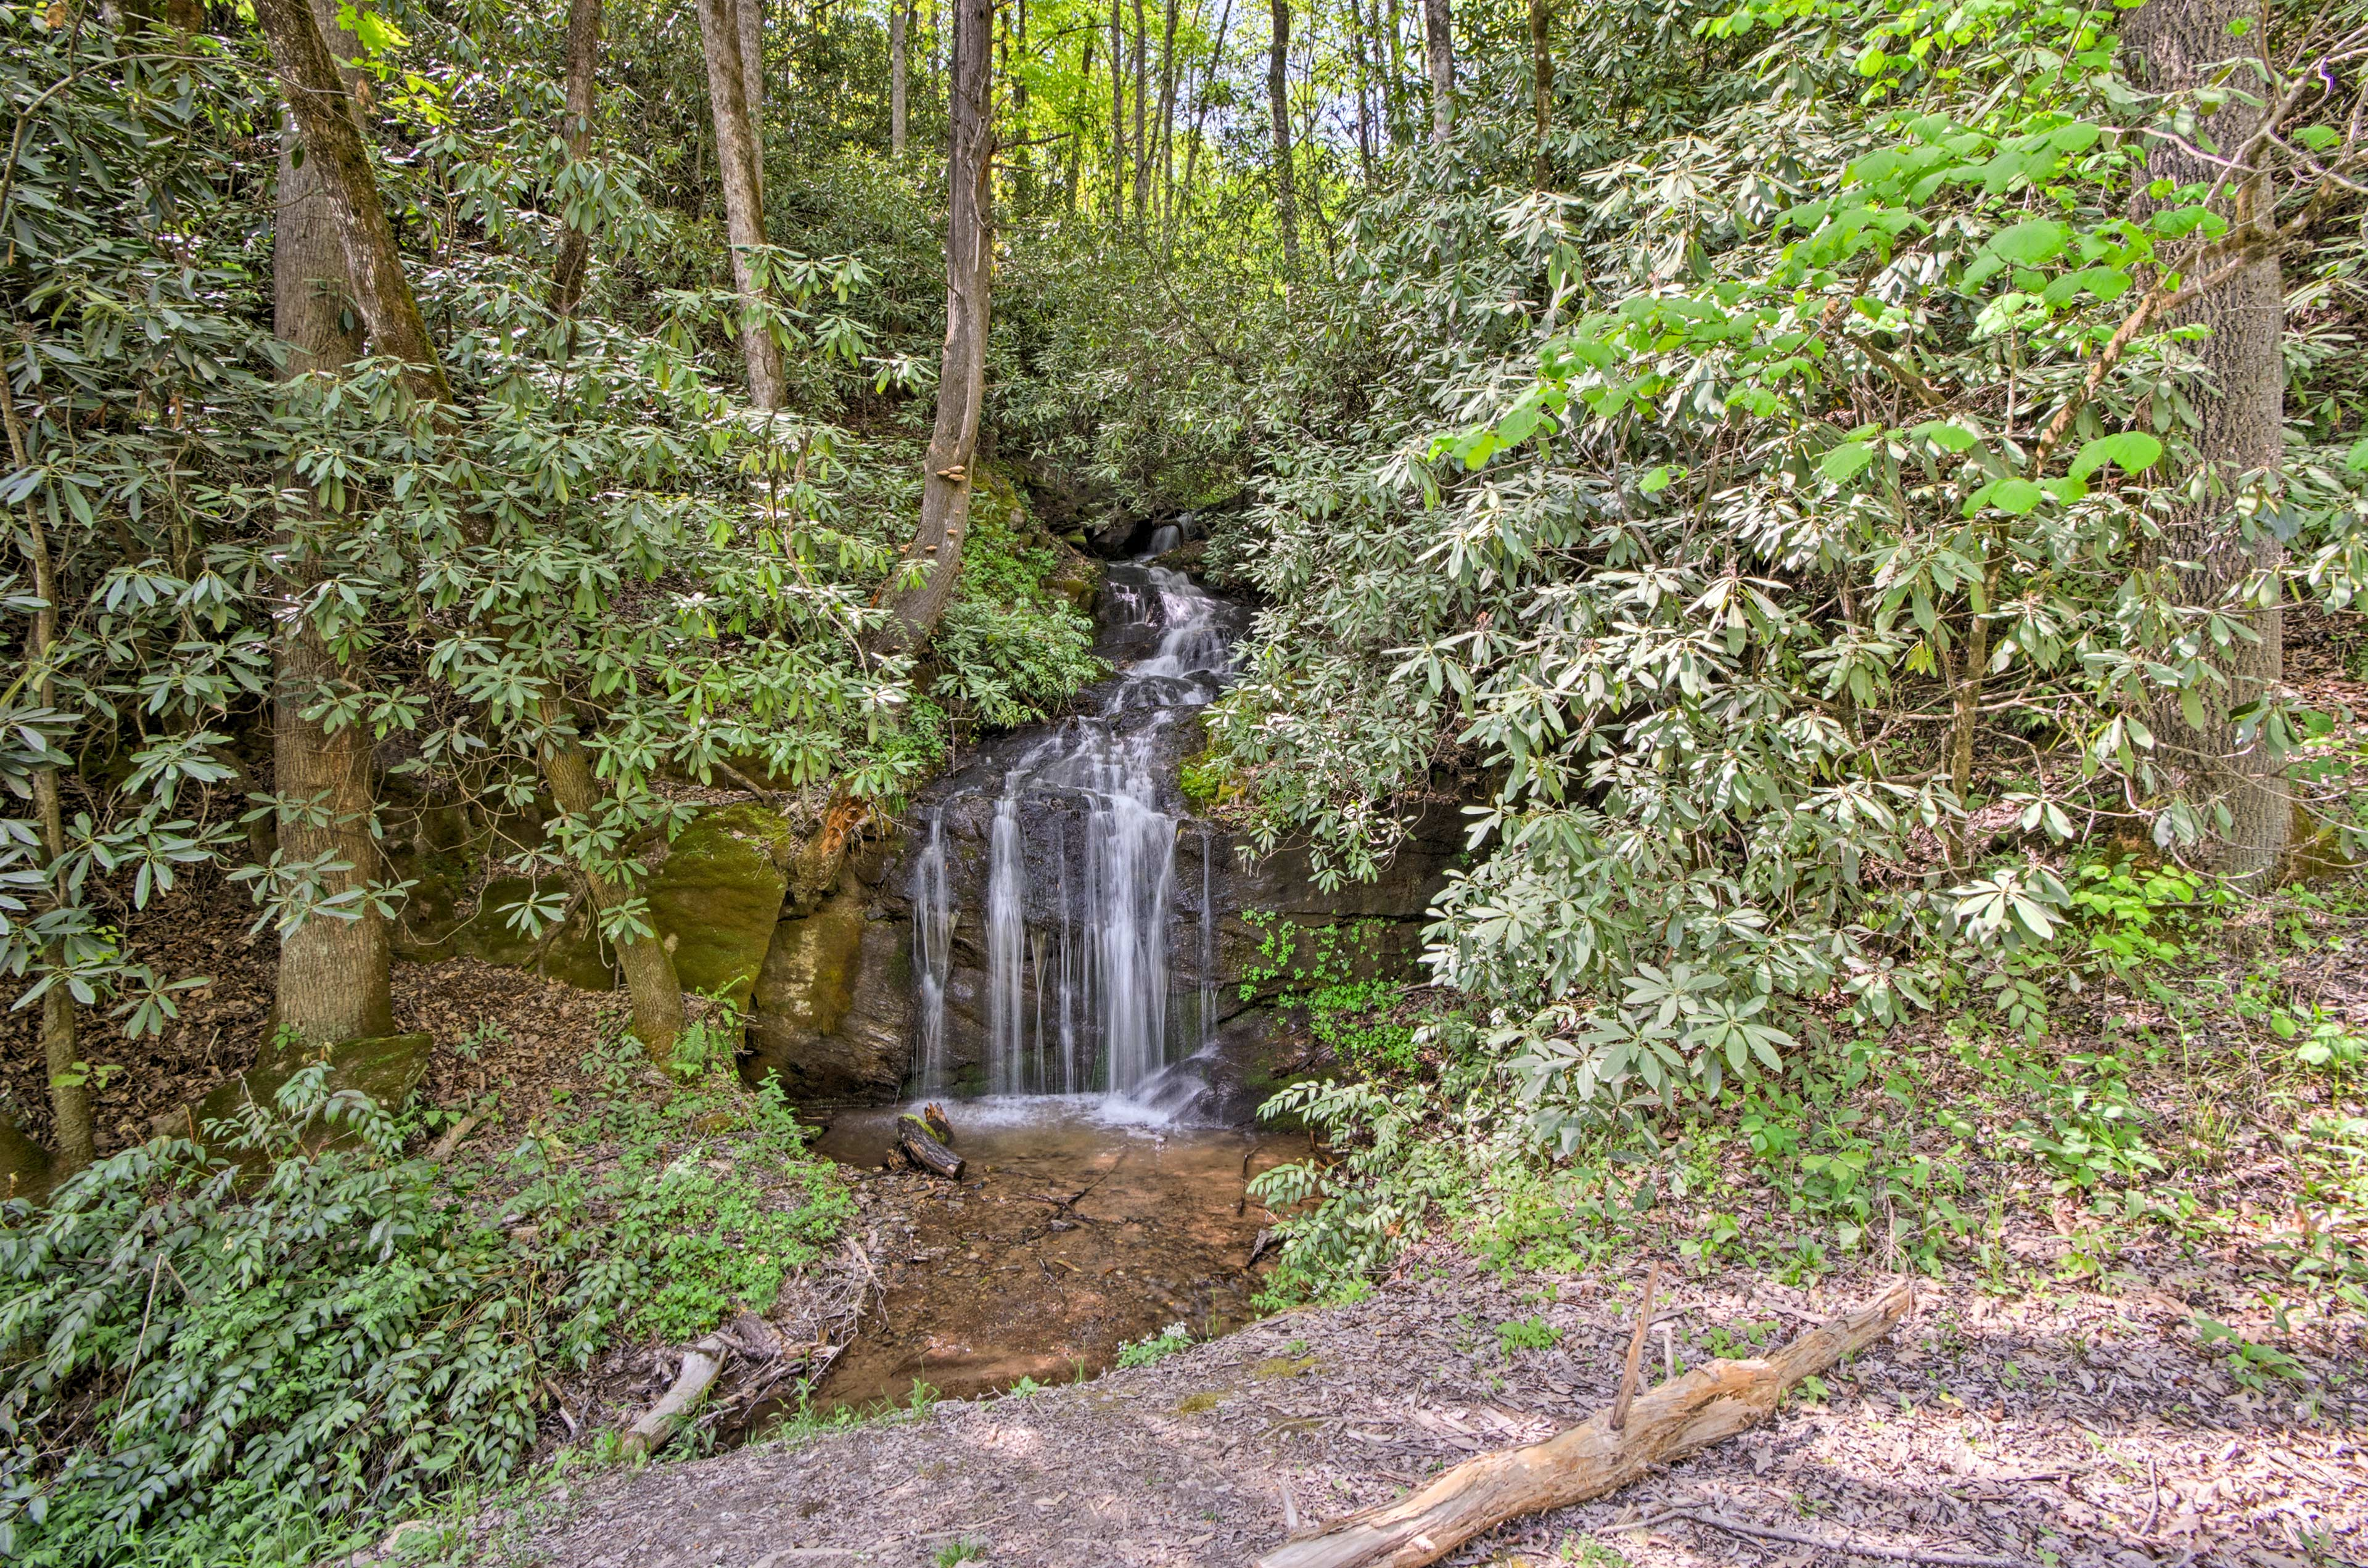 Explore the waterfalls close to the home.